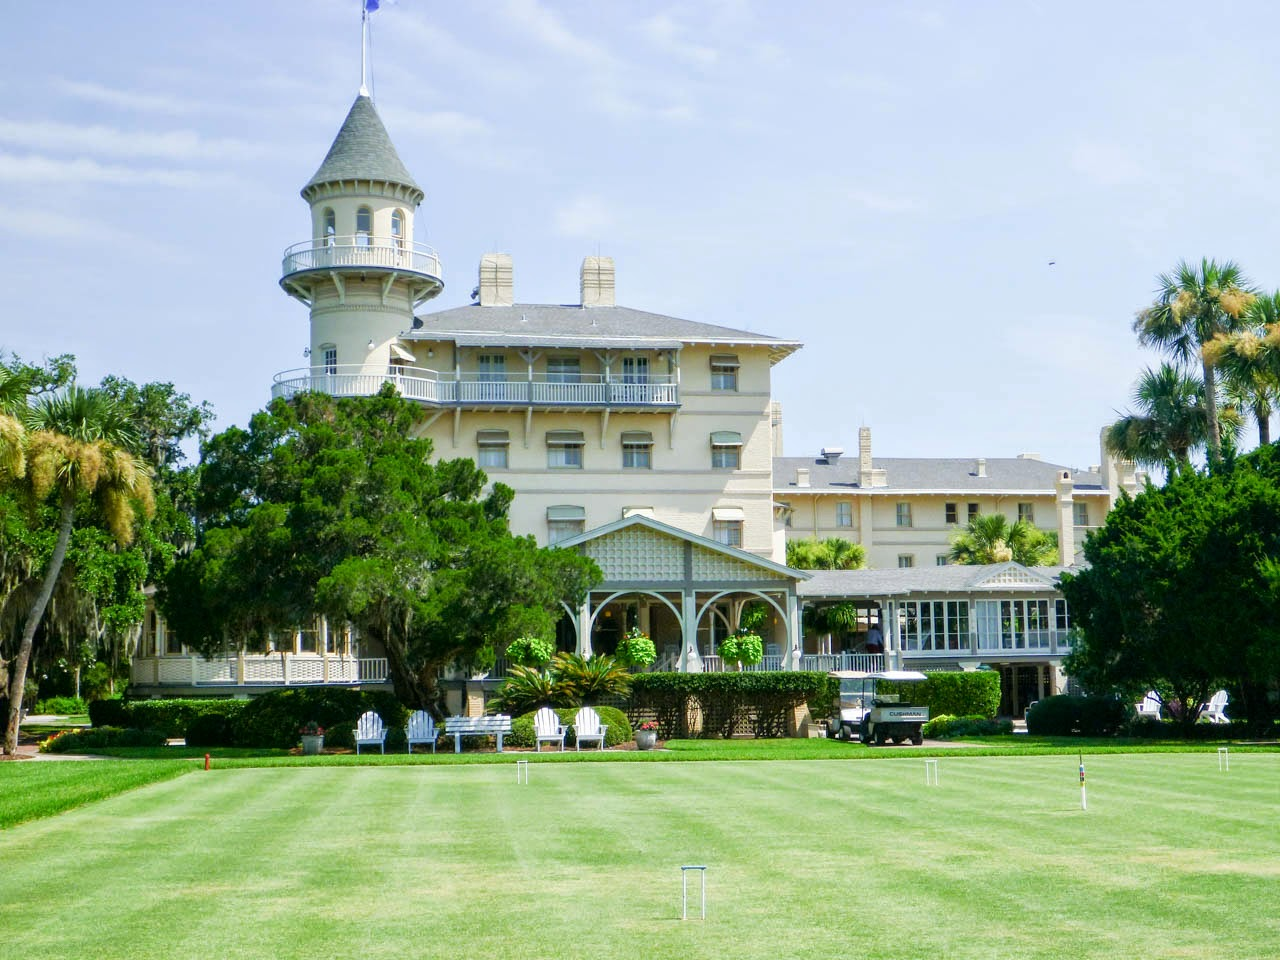 jekyll island black dating site Jekyll island club is a member of historic hotels in america and dates back to 1887 i did order the black / white checkered skirt from target.